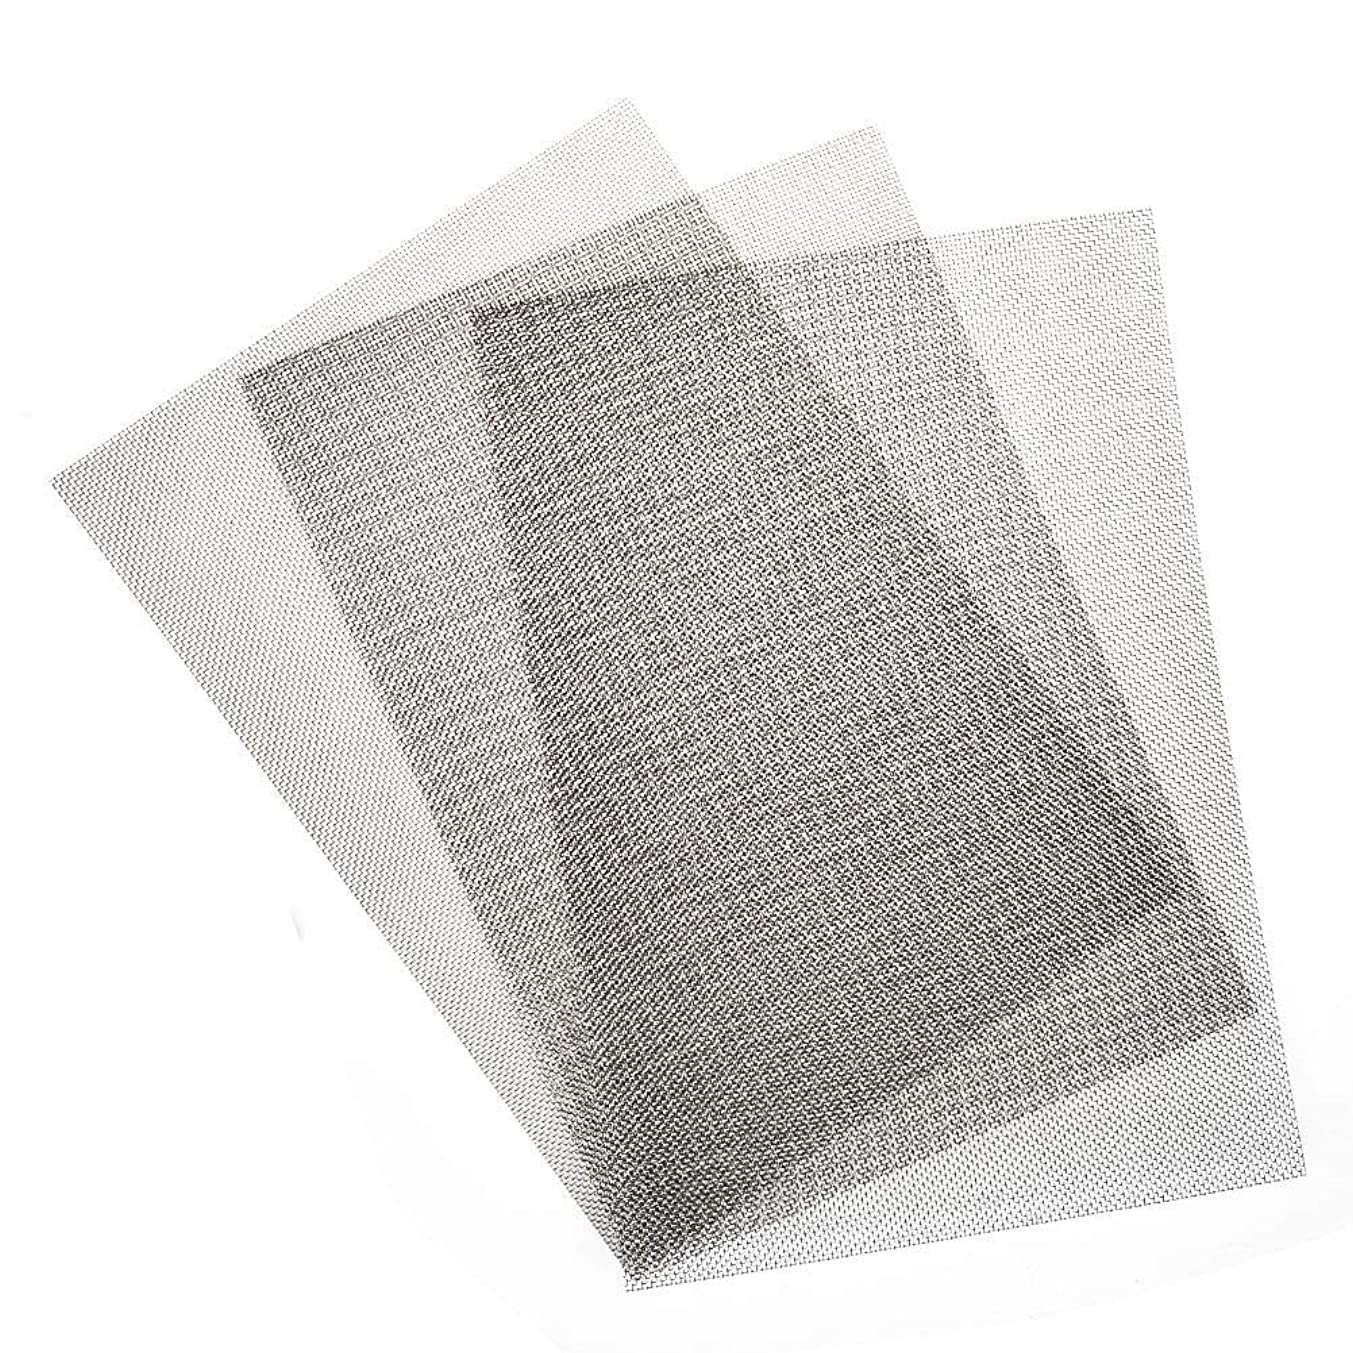 TIMESETL 3pcs Stainless Steel Woven Wire 20 Mesh - 12